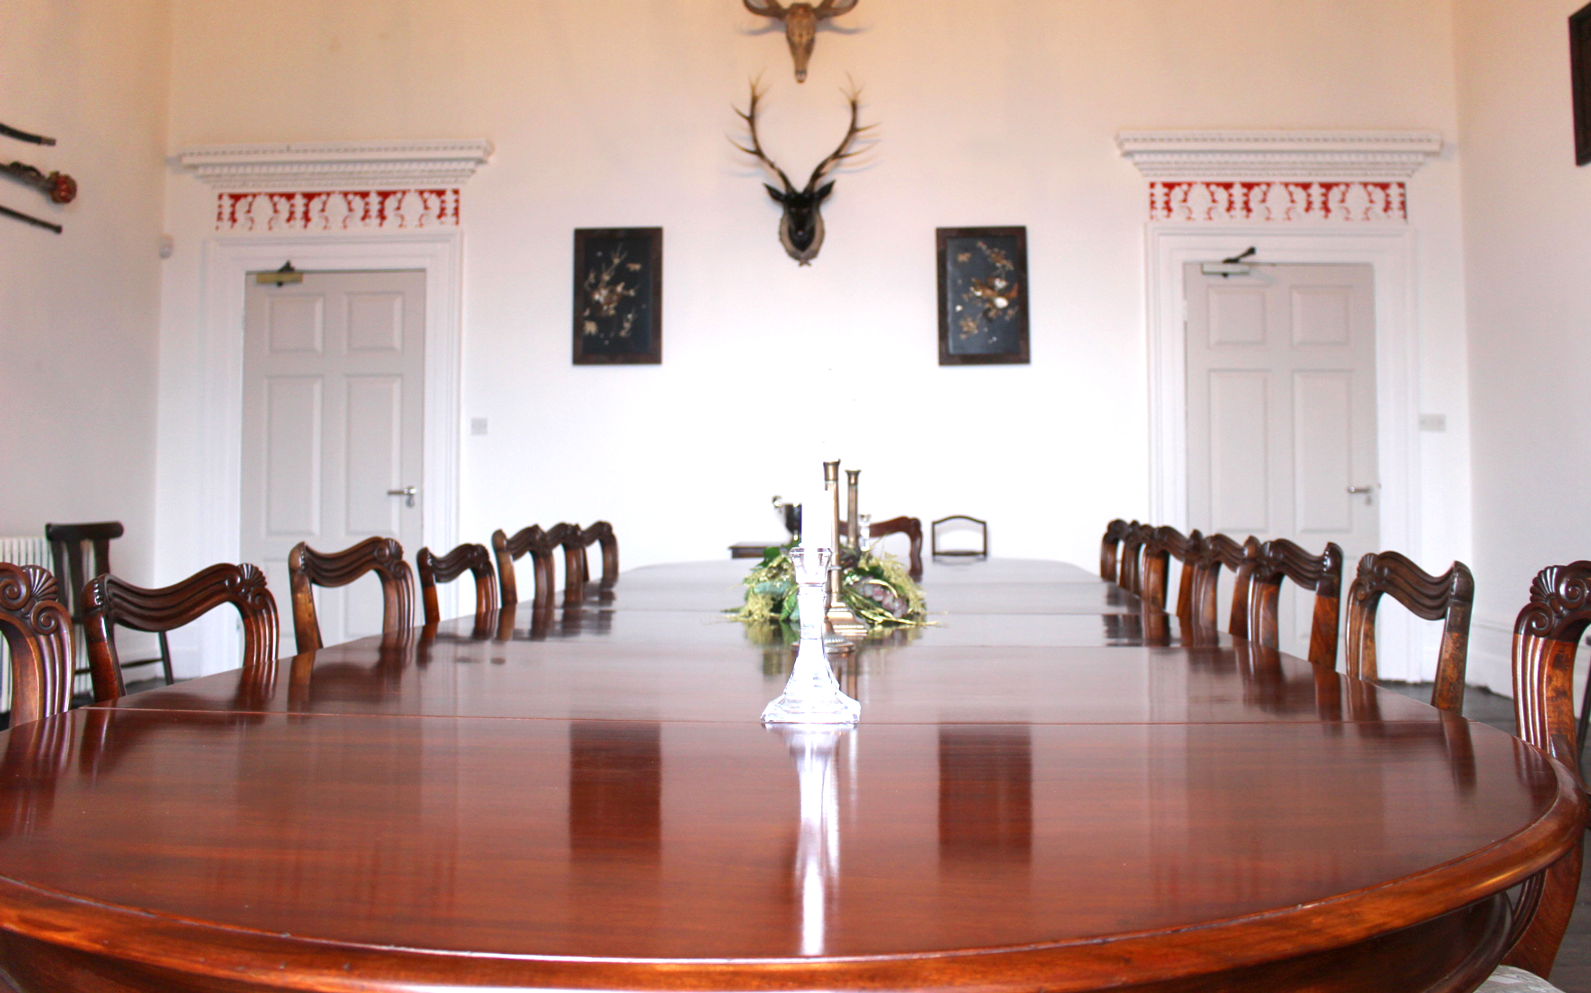 The dining room can double as a boardroom orlagh country house orlagh private house and estate for hire dublin location weddings and special events dzzzfo